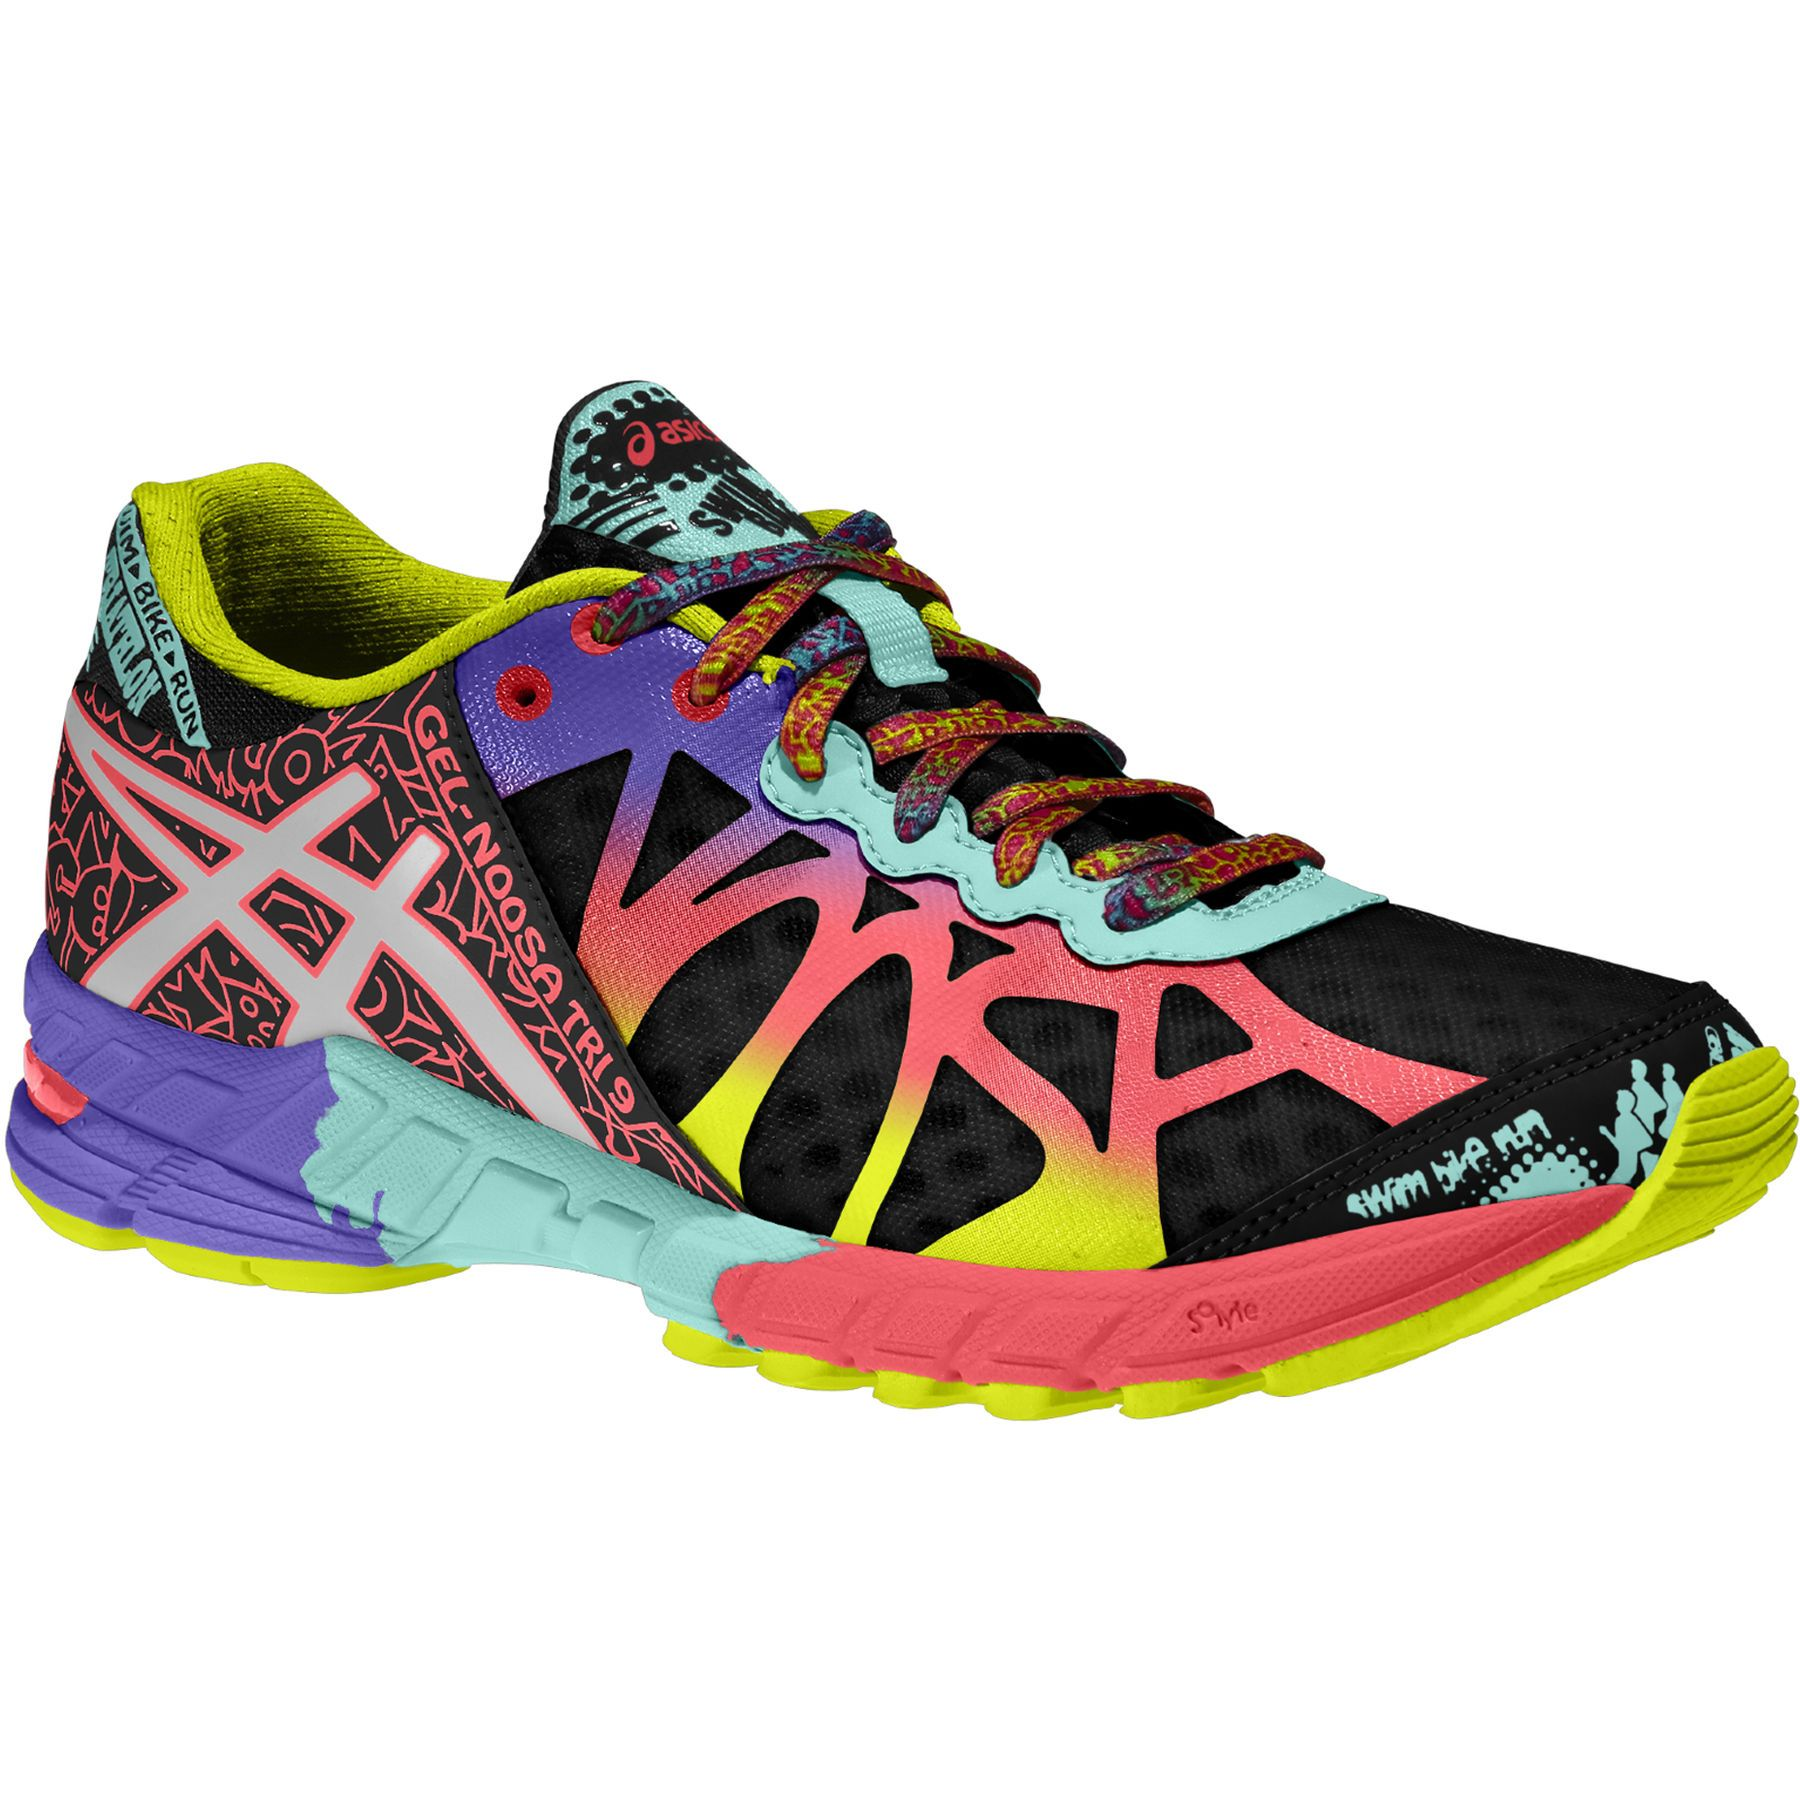 huge selection of 1ecad 27d90 ... new zealand wiggle asics womens gel noosa tri 9 shoes aw14 racing  running shoes 024d3 7c666